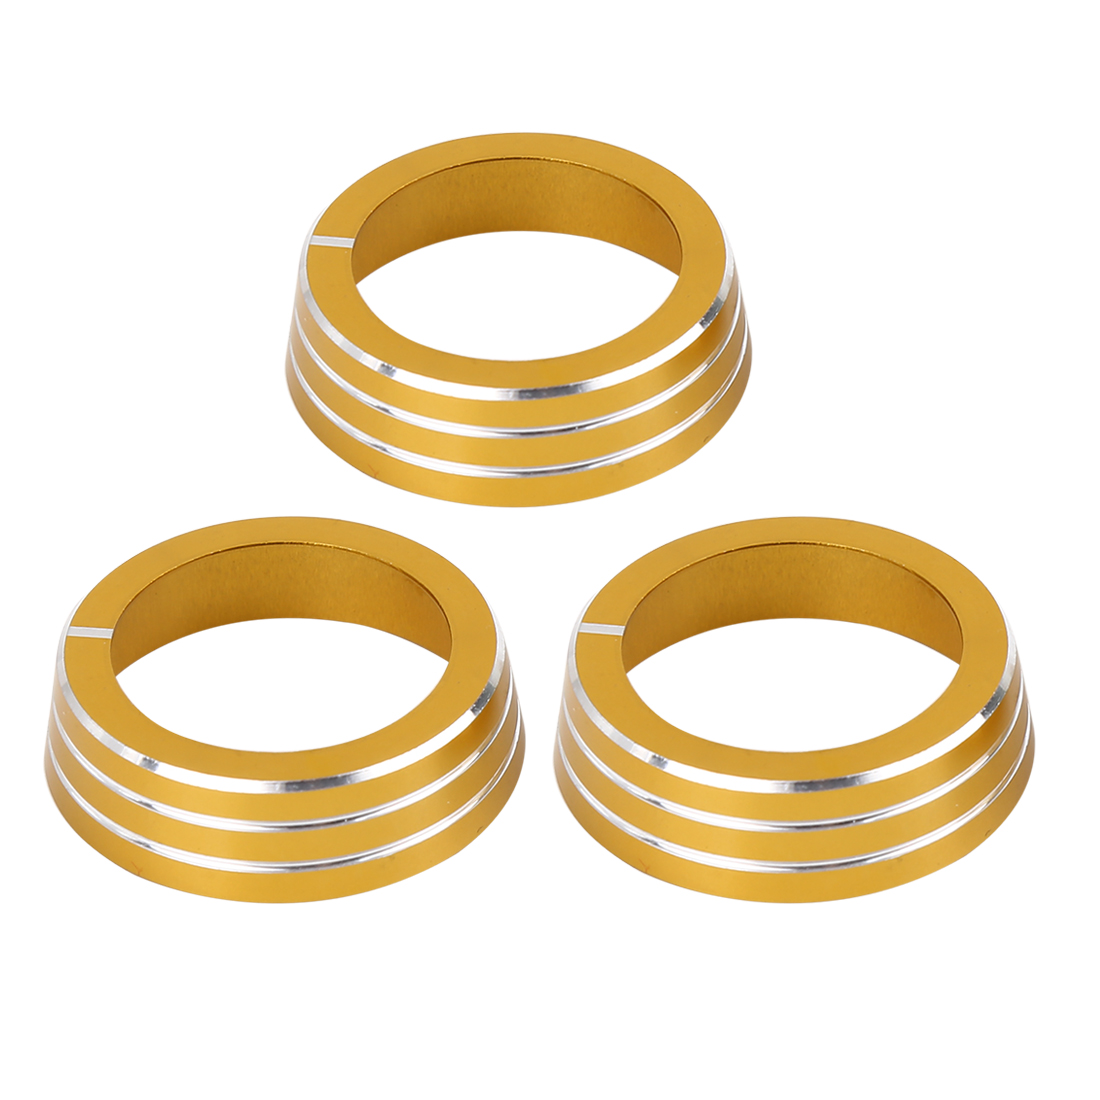 3pcs Gold Tone AC Climate Control Ring Knob Cover Trim for VW MK6 Golf GTI Jetta